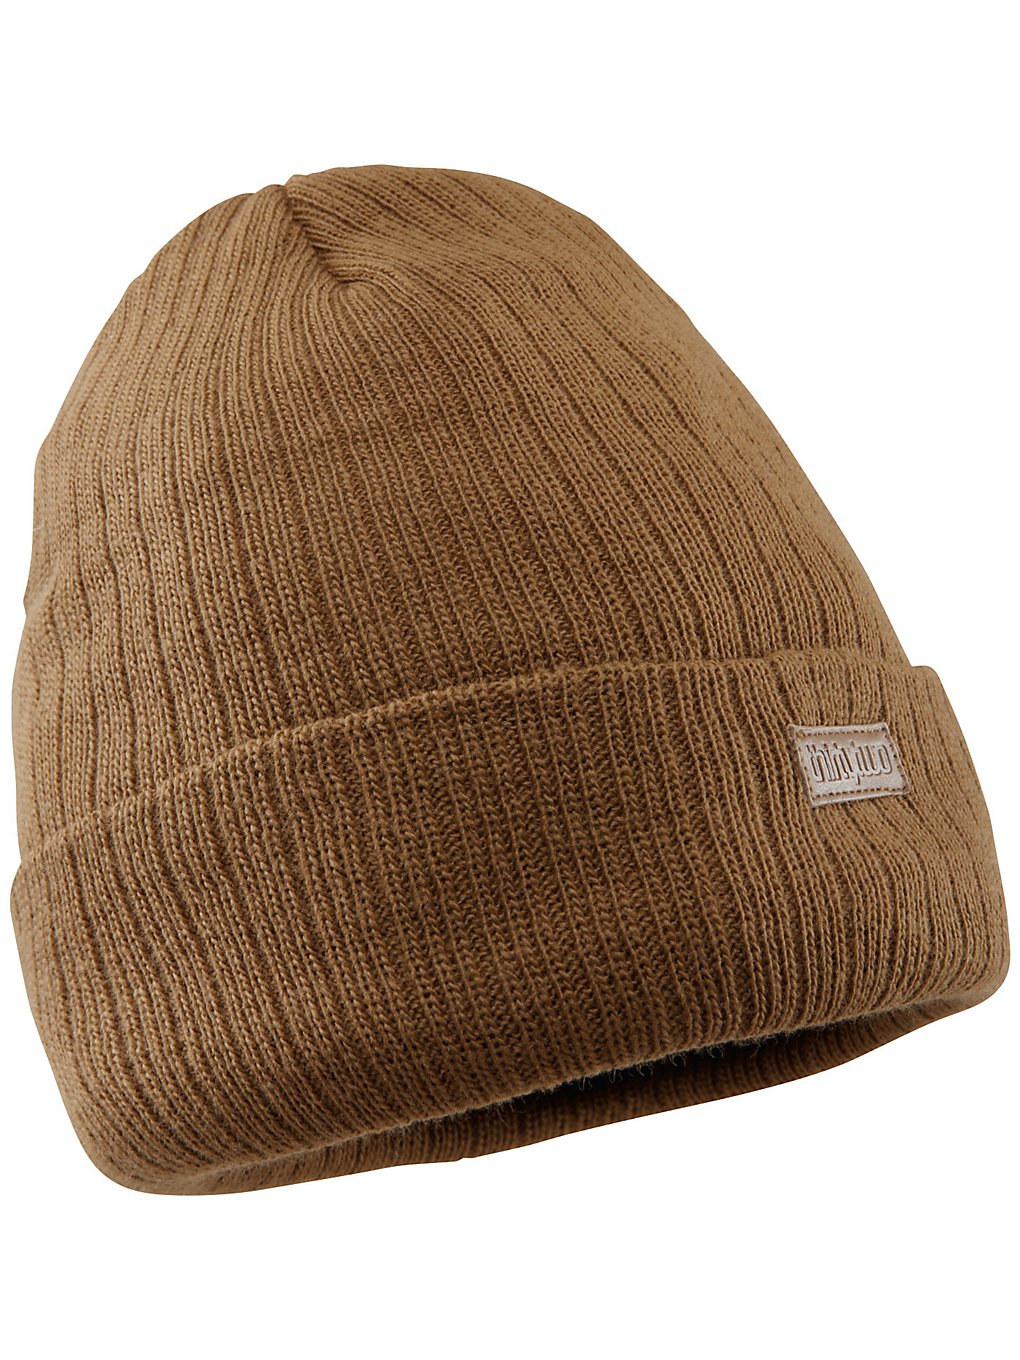 Image of 32 Heater Beanie